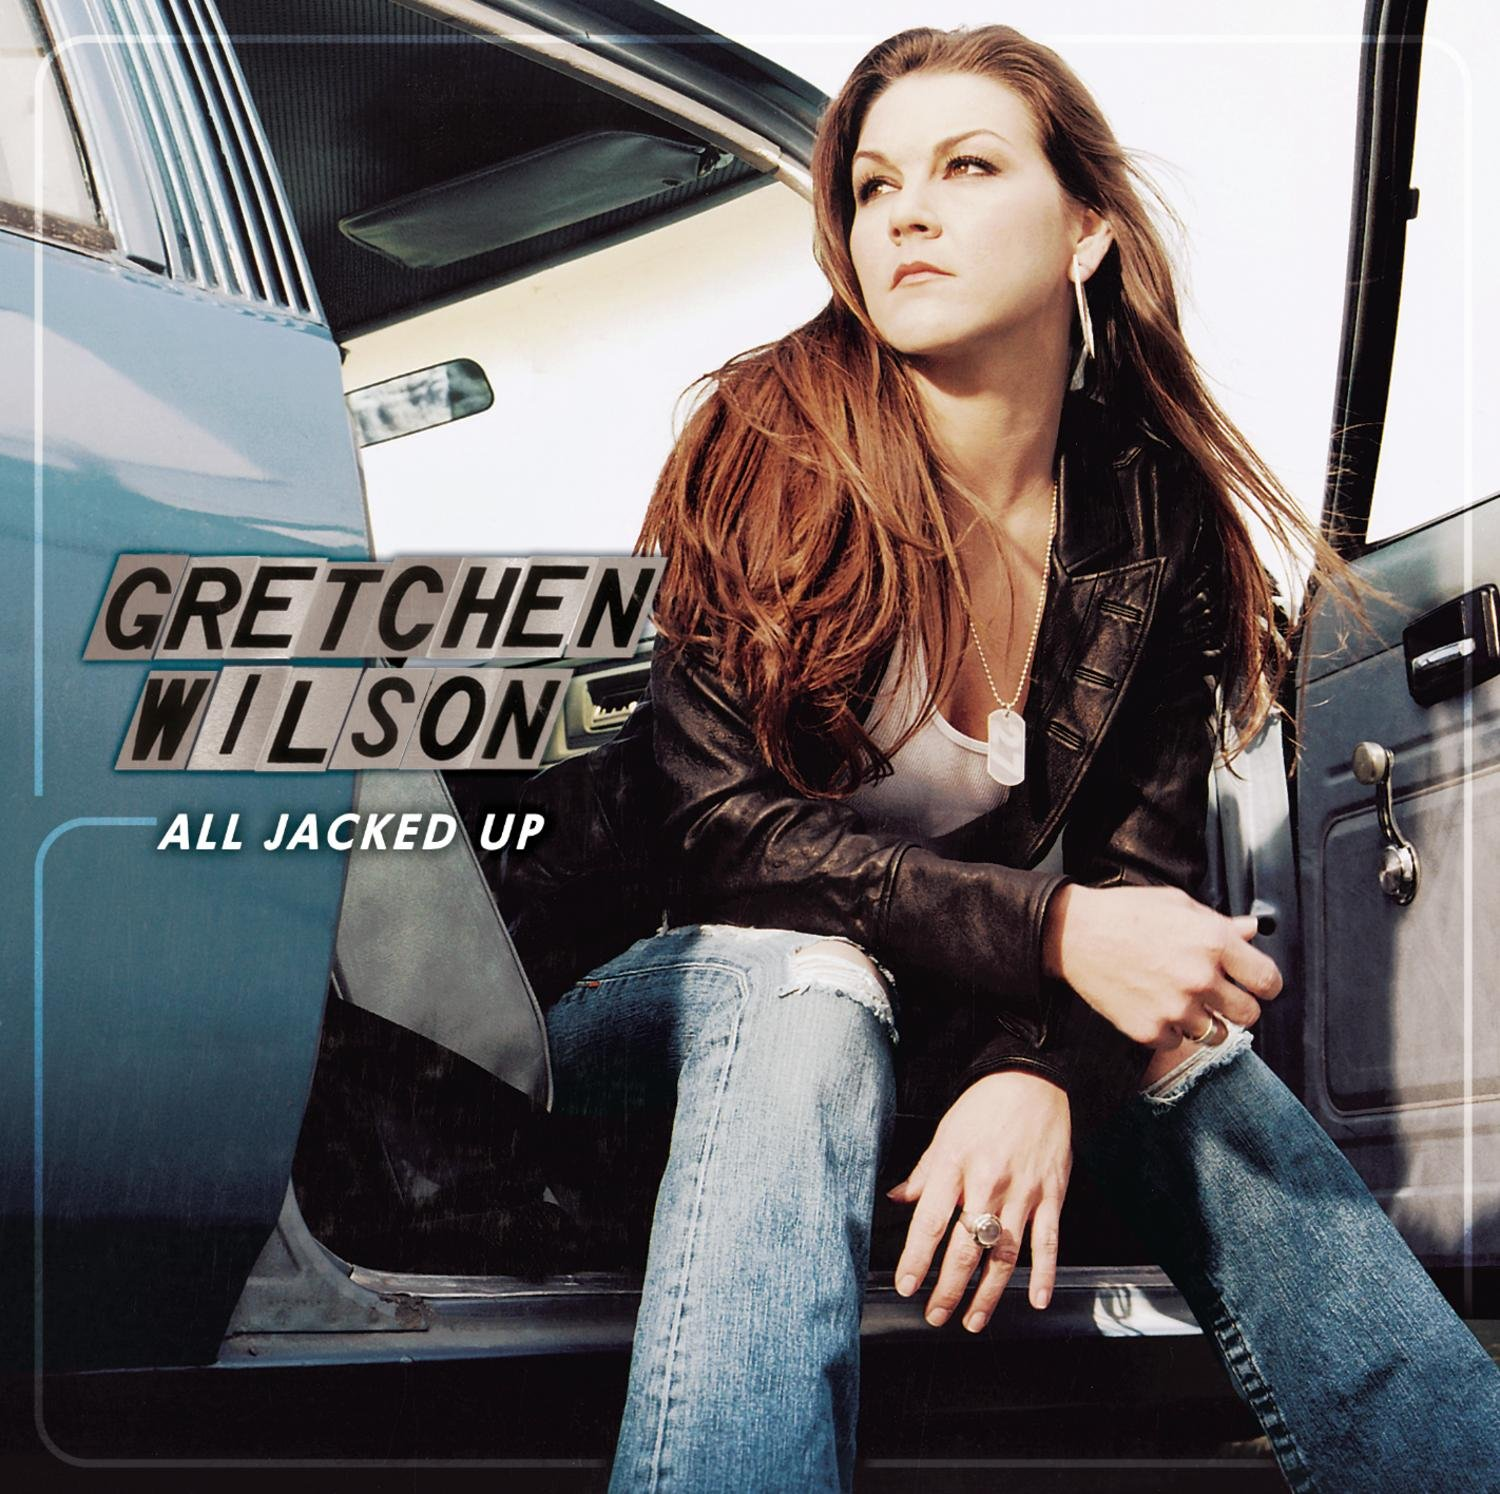 Gretchen Wilson, All Jacked Up